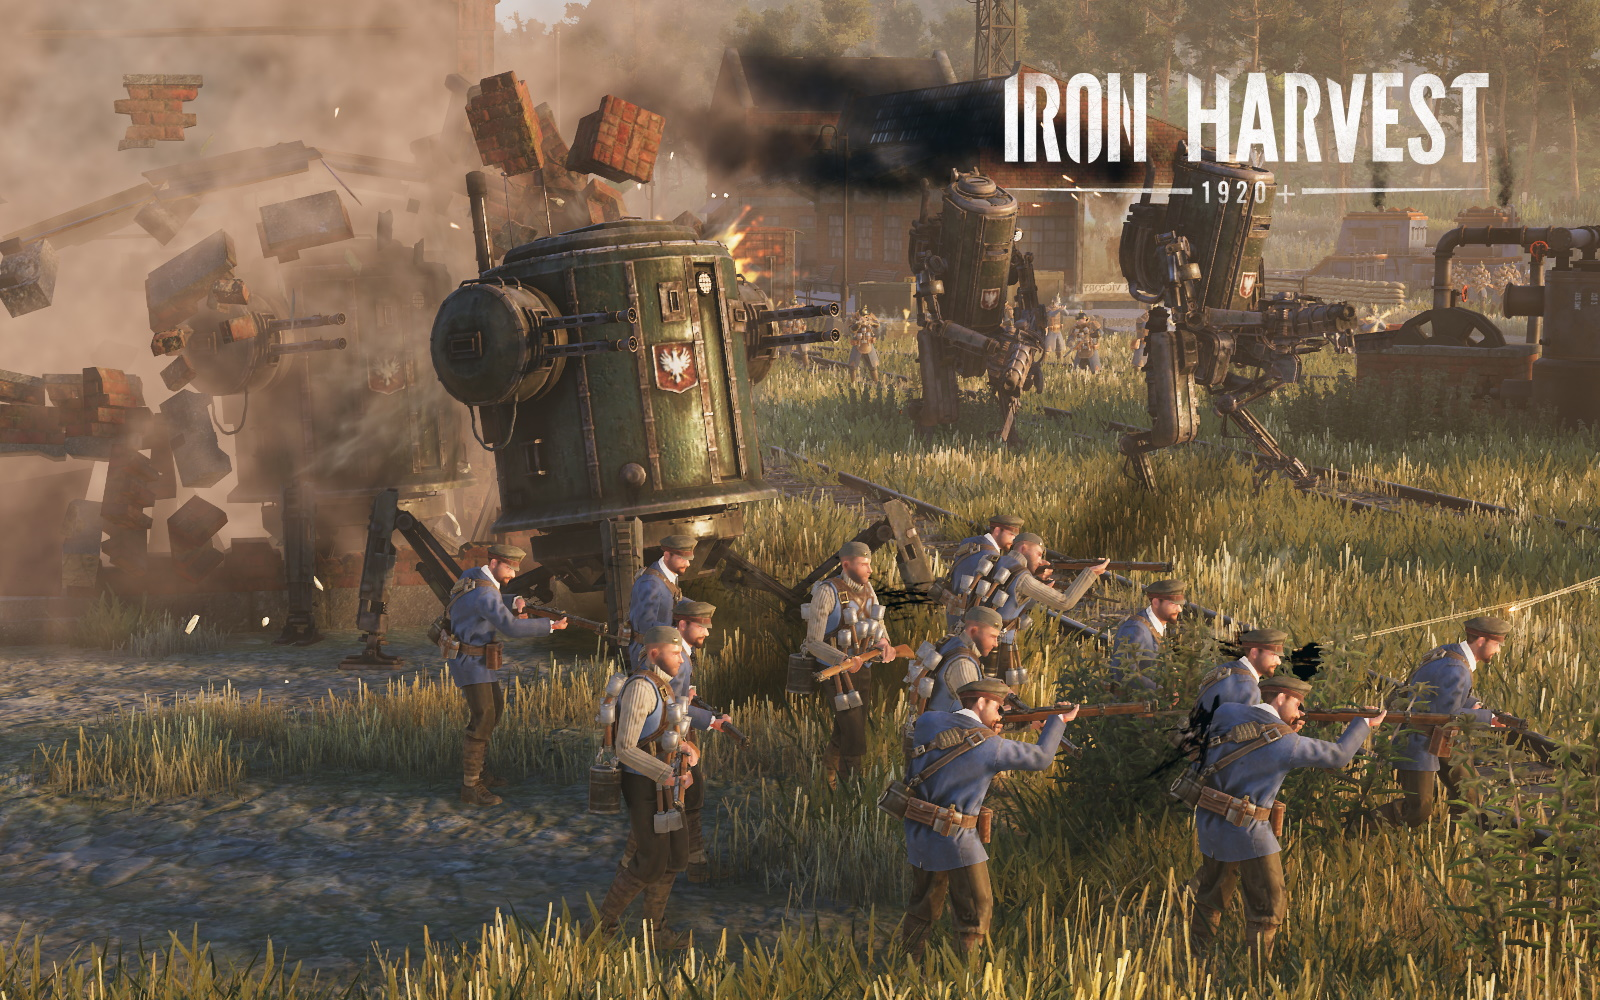 Iron Harvest 1920+ Release A New Faction Feature